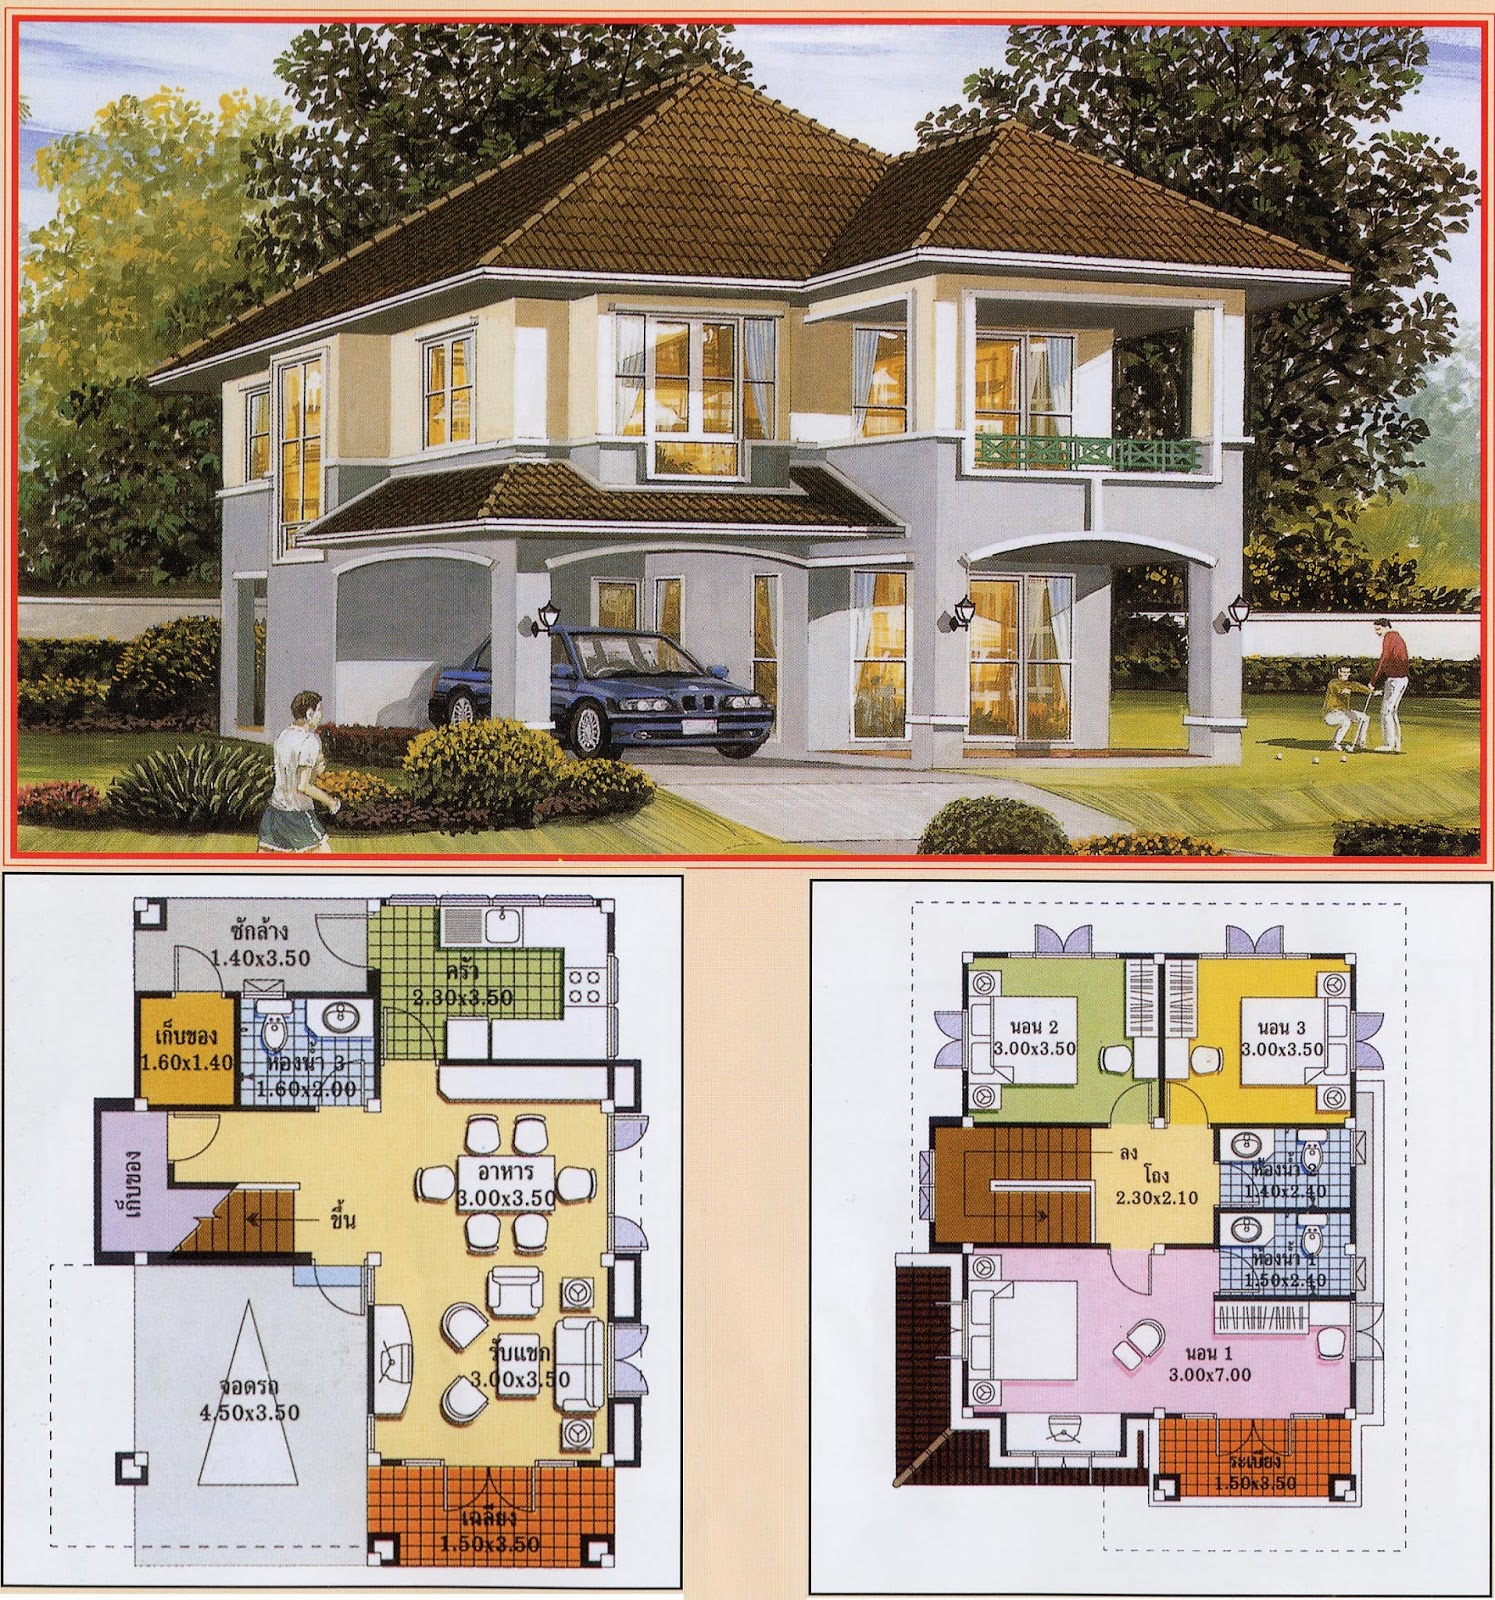 Architecture art khmer thai villa house plan for House design program